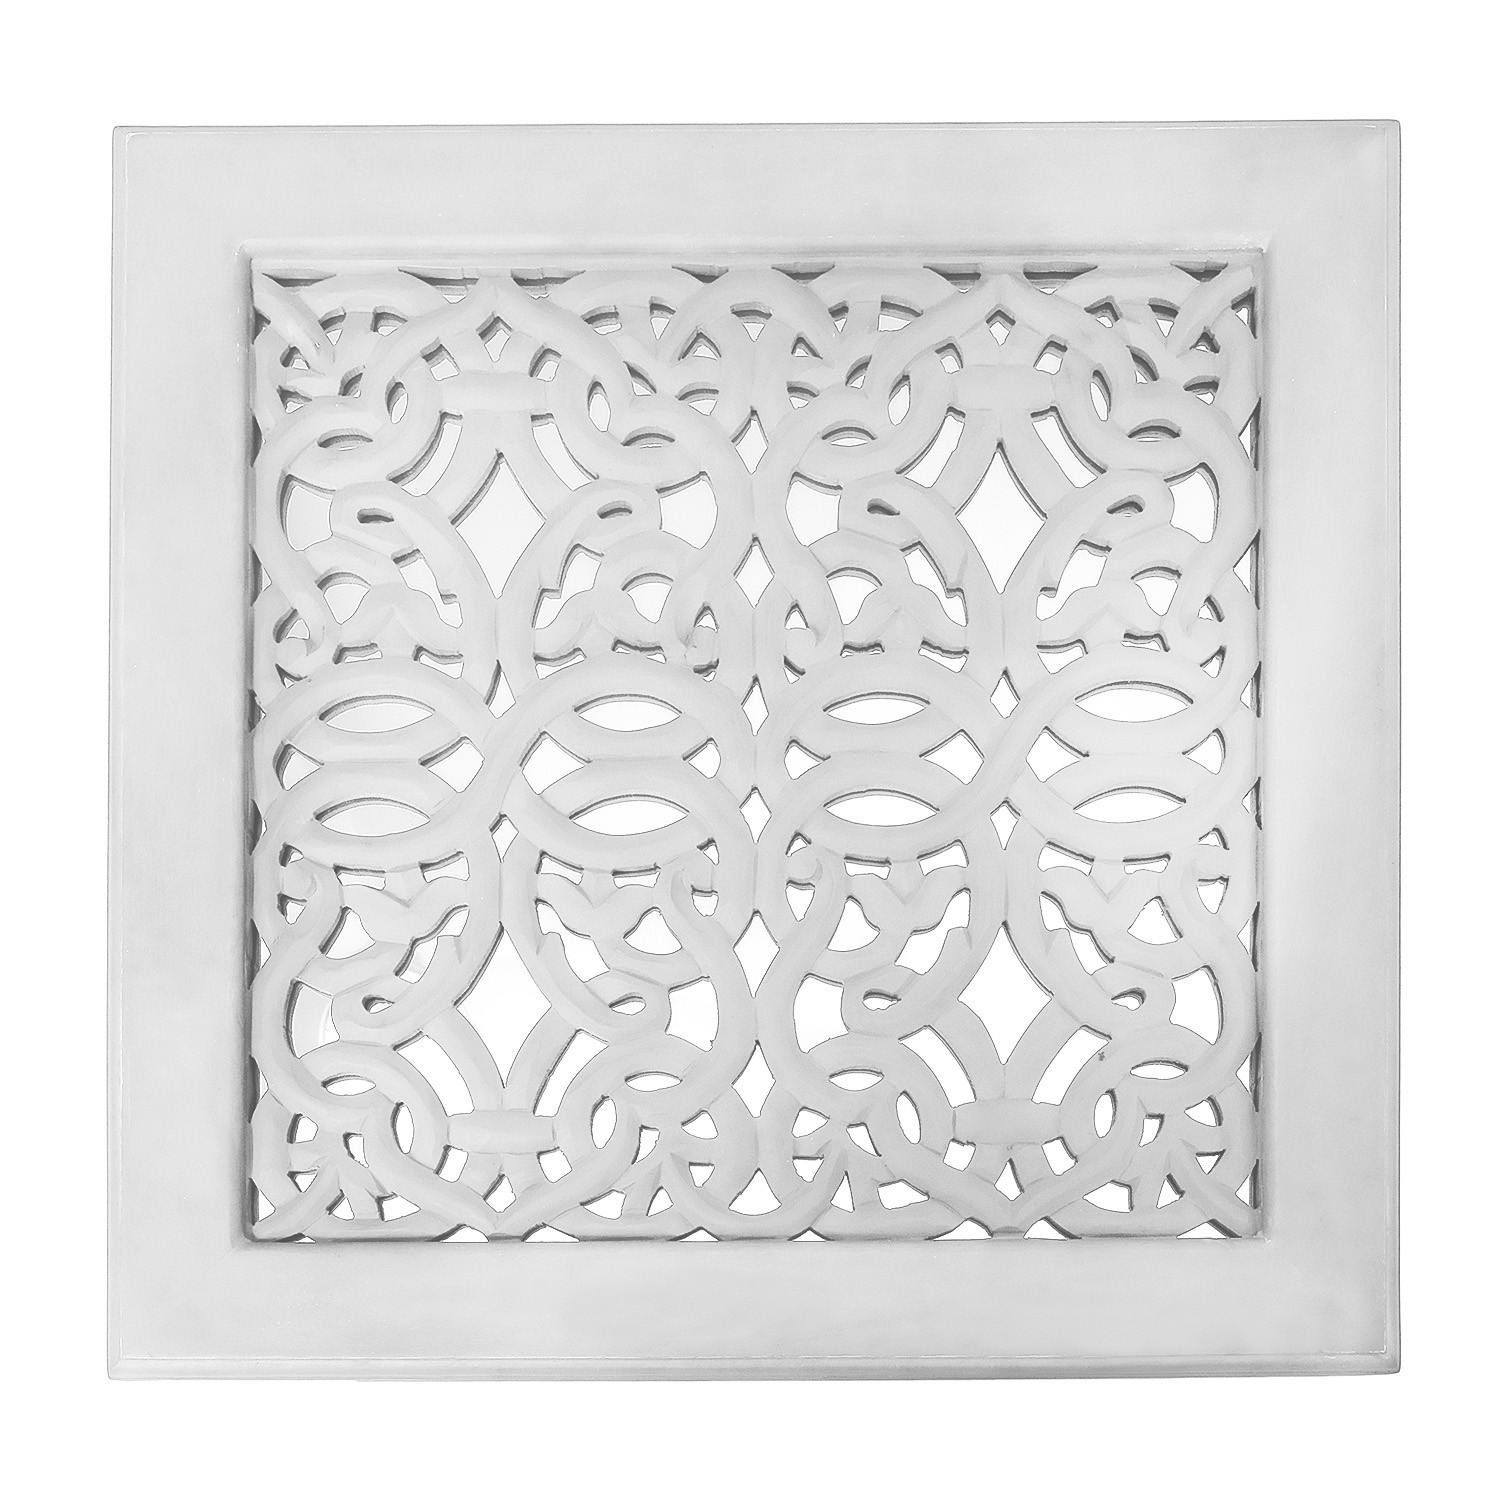 Fretwork Wall Art: White (Set Of 3) | The Yellow Door Store Regarding Best And Newest White Wall Art (View 8 of 20)